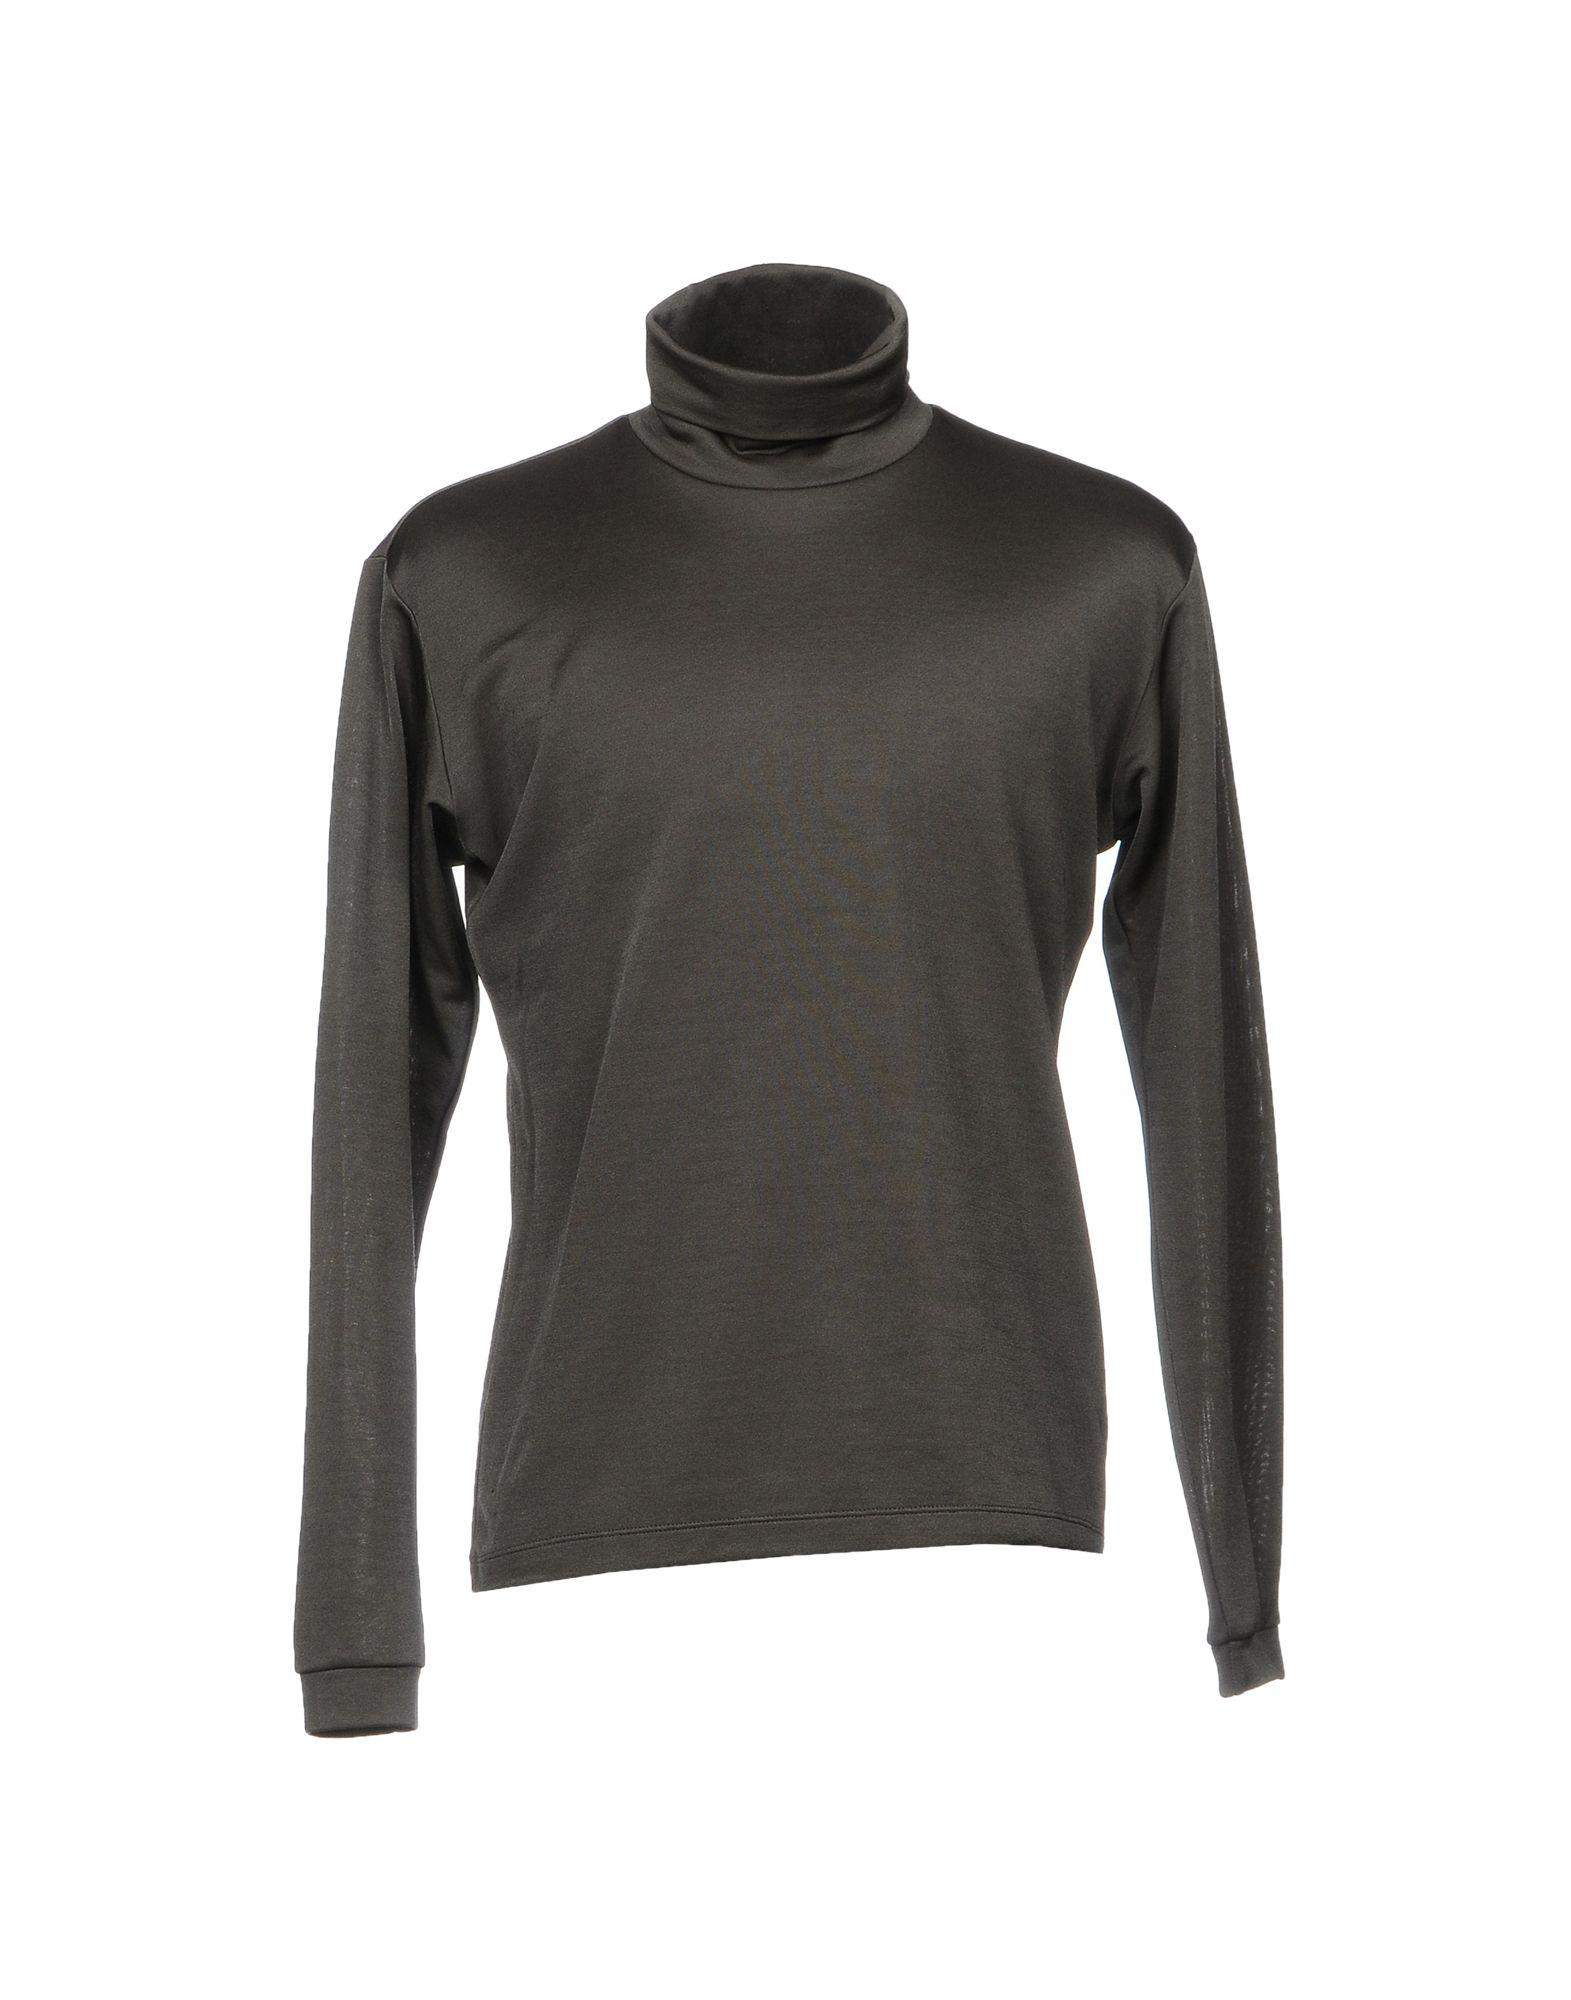 Issey Miyake T-shirts In Lead